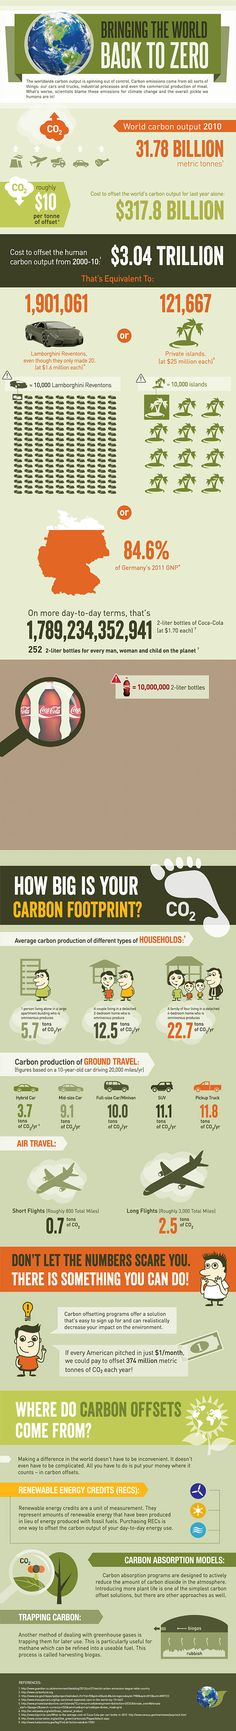 Carbon footprint infographic.  V good up to the offsetting section...offsetting is only part of the answer, because it cannot take up all the CO2 that we are pumping into the atmosphere (and it is subject to a range of environmental variables) : the key is stopping putting the greenhouse gases into the air.